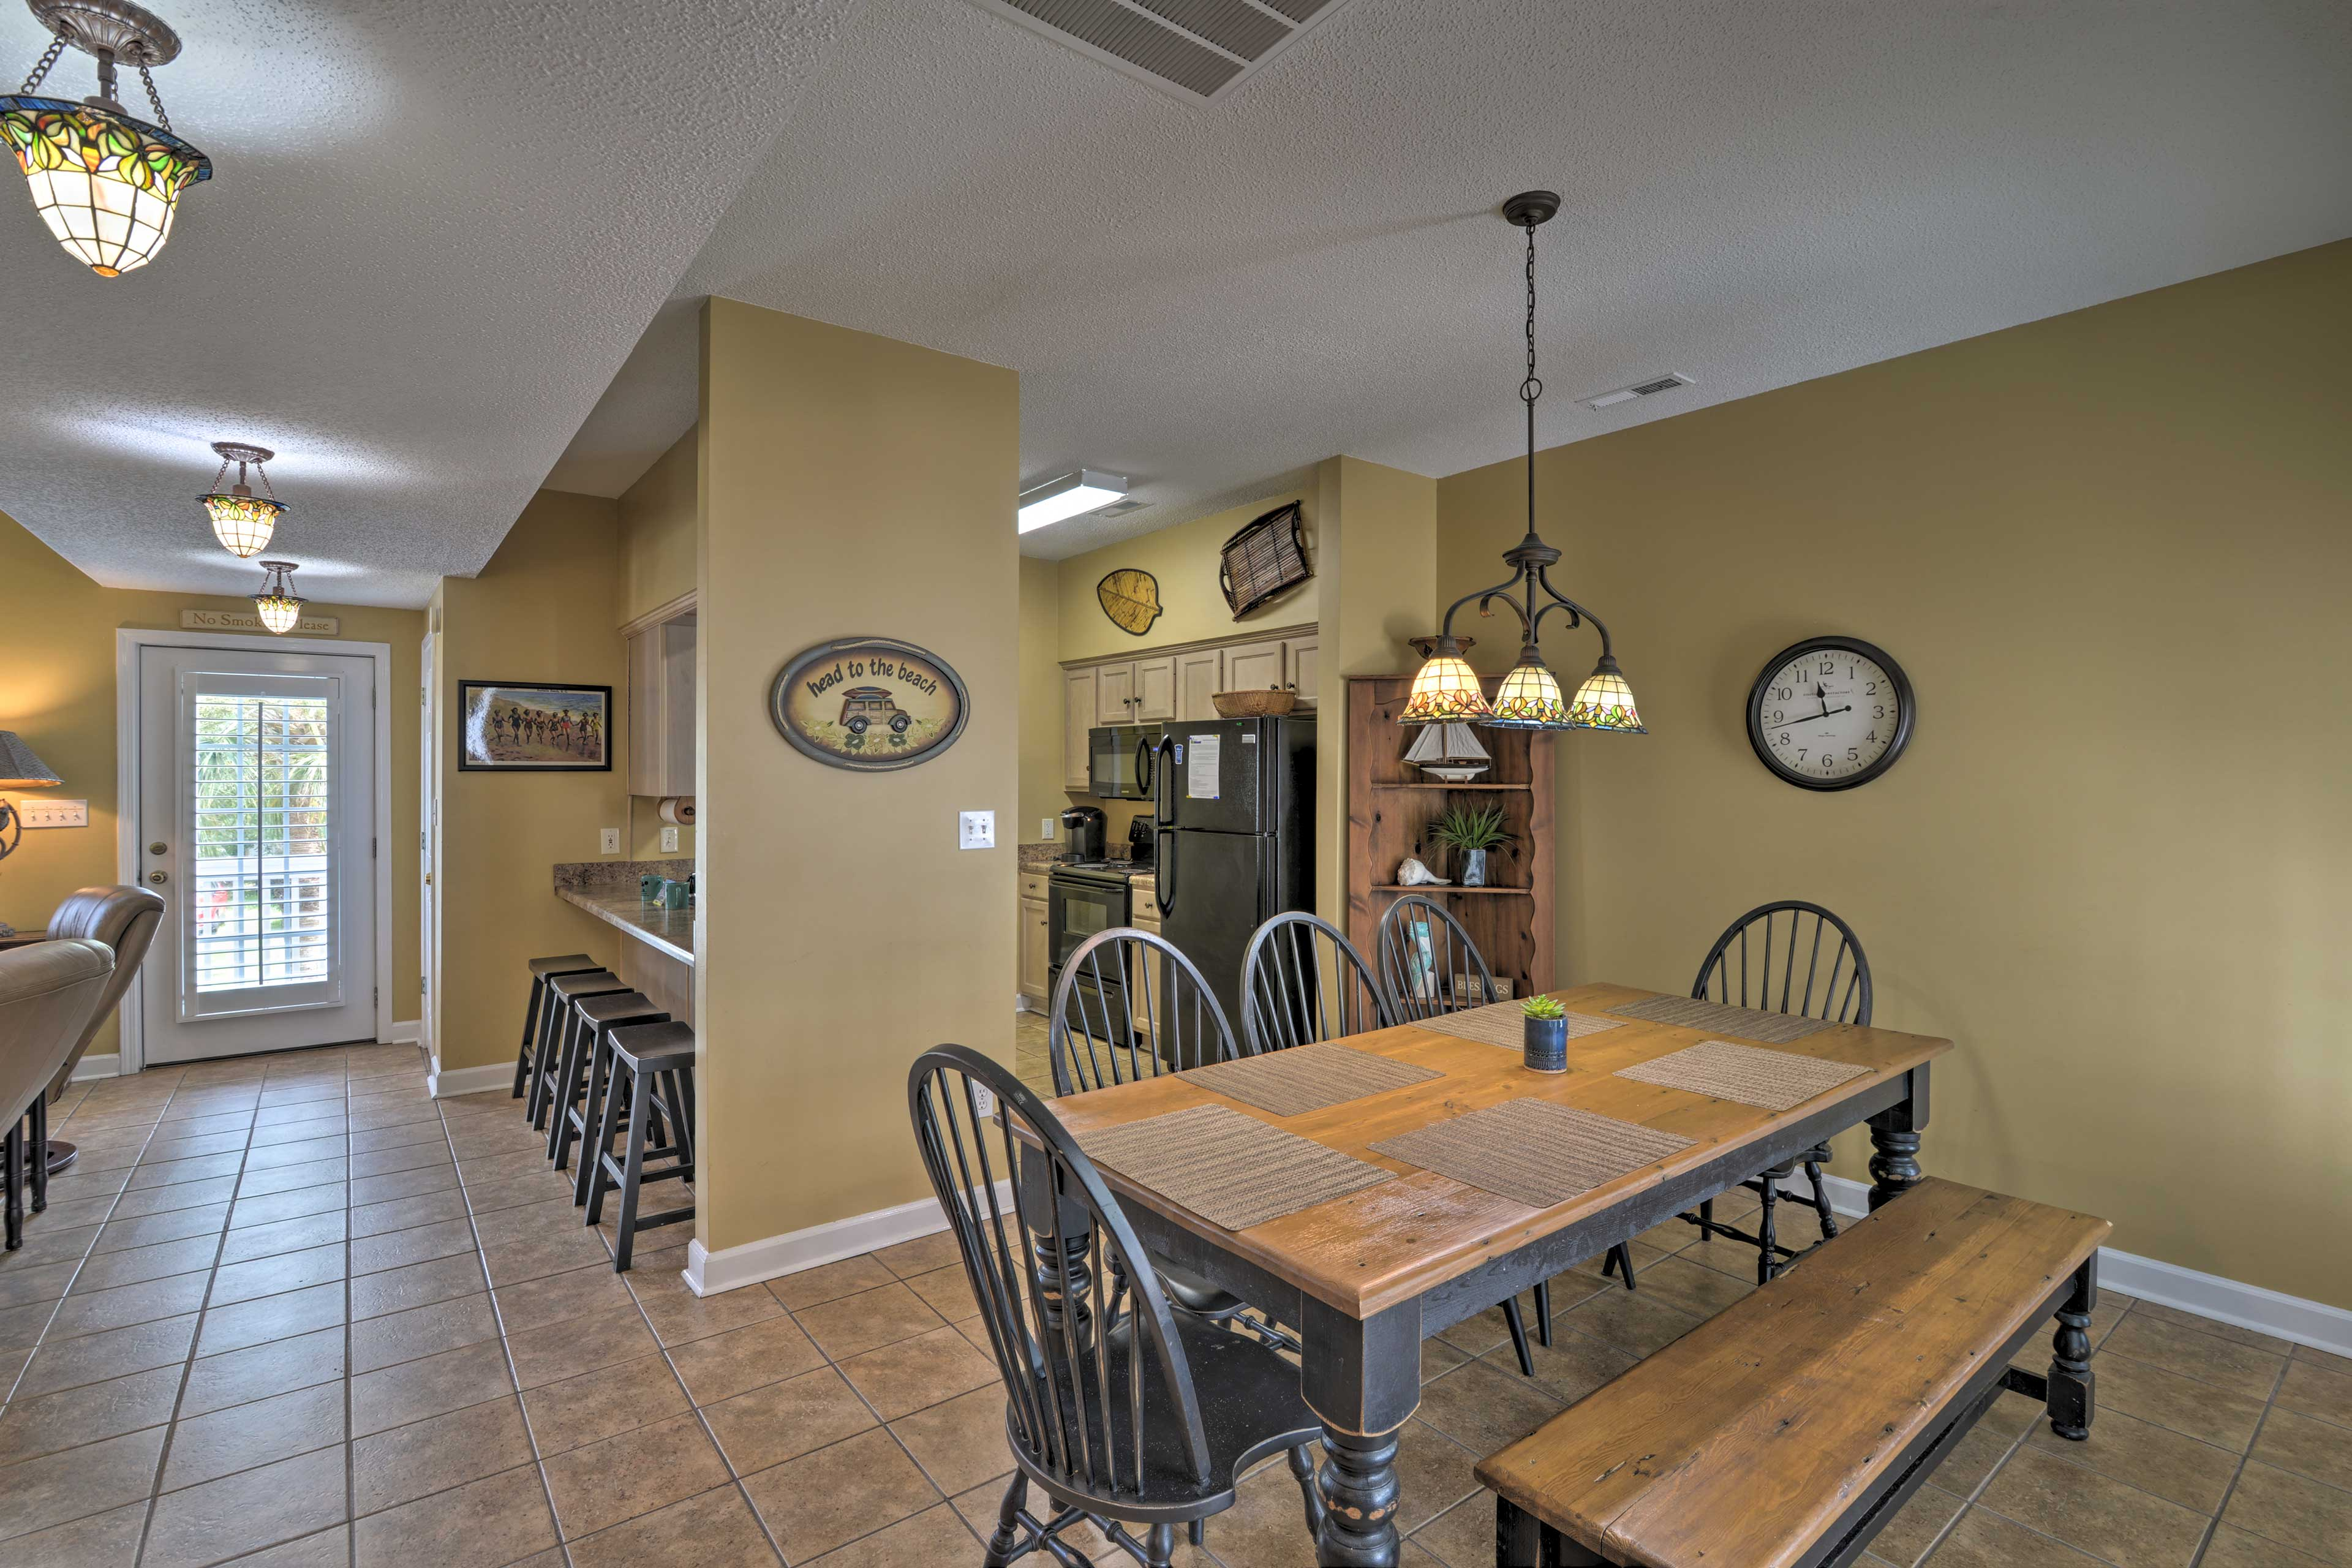 Wine and dine in the comfort of your Surfside Beach home base.